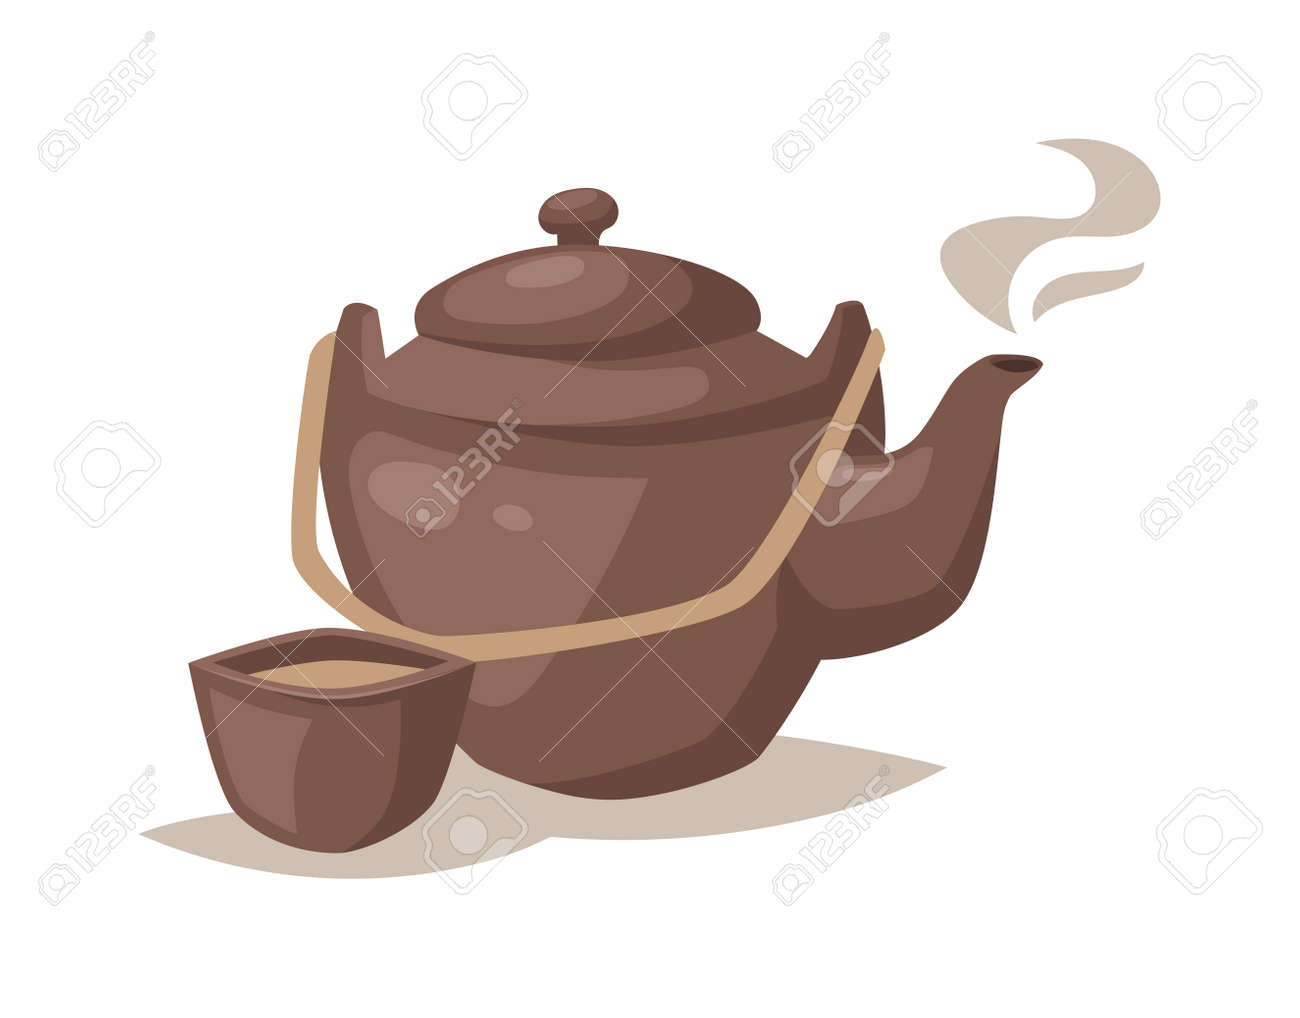 Teapot With Cup Cartoon Teapot Cup And Kitchen Cartoon Teapot Relax Equipment